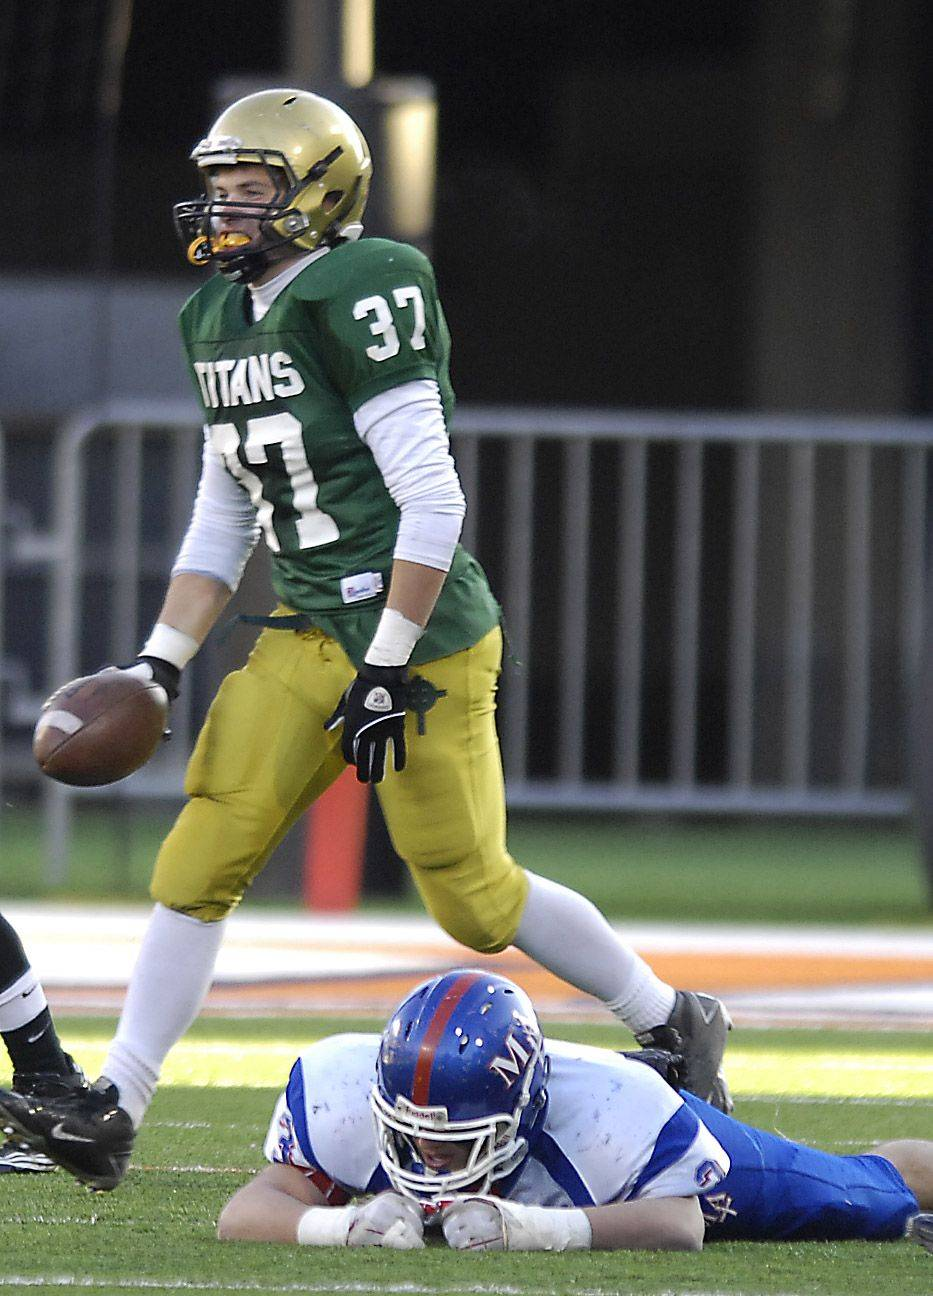 Marmion's Nick Scoliere lies on the ground after fumbling a punt and losing the ball to Rockford Boylan's Grant Flodin during the Class 6A state final in Champaign Saturday.